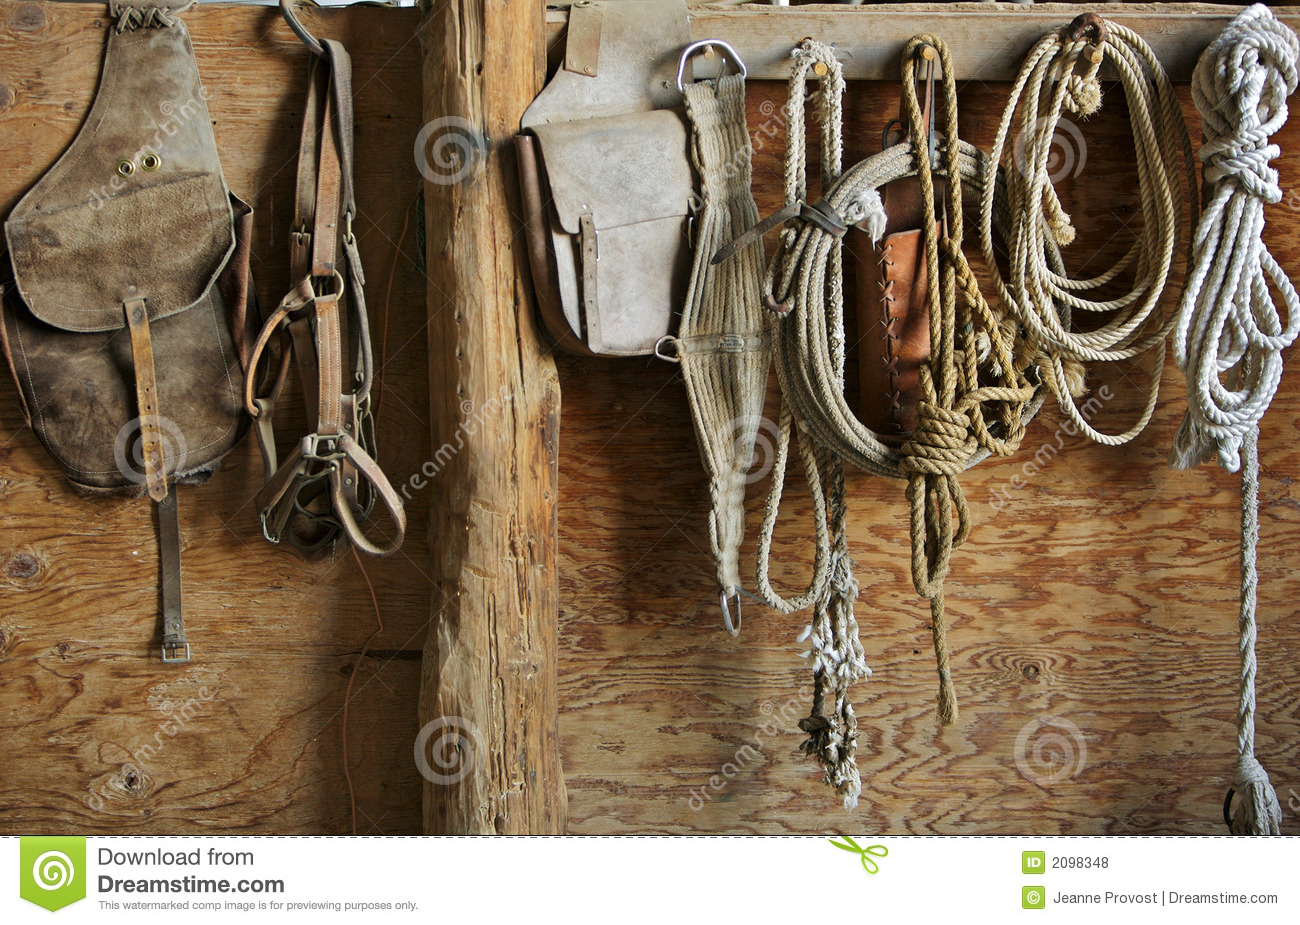 Horse Equipment Royalty Free Stock Photos - Image: 2098348